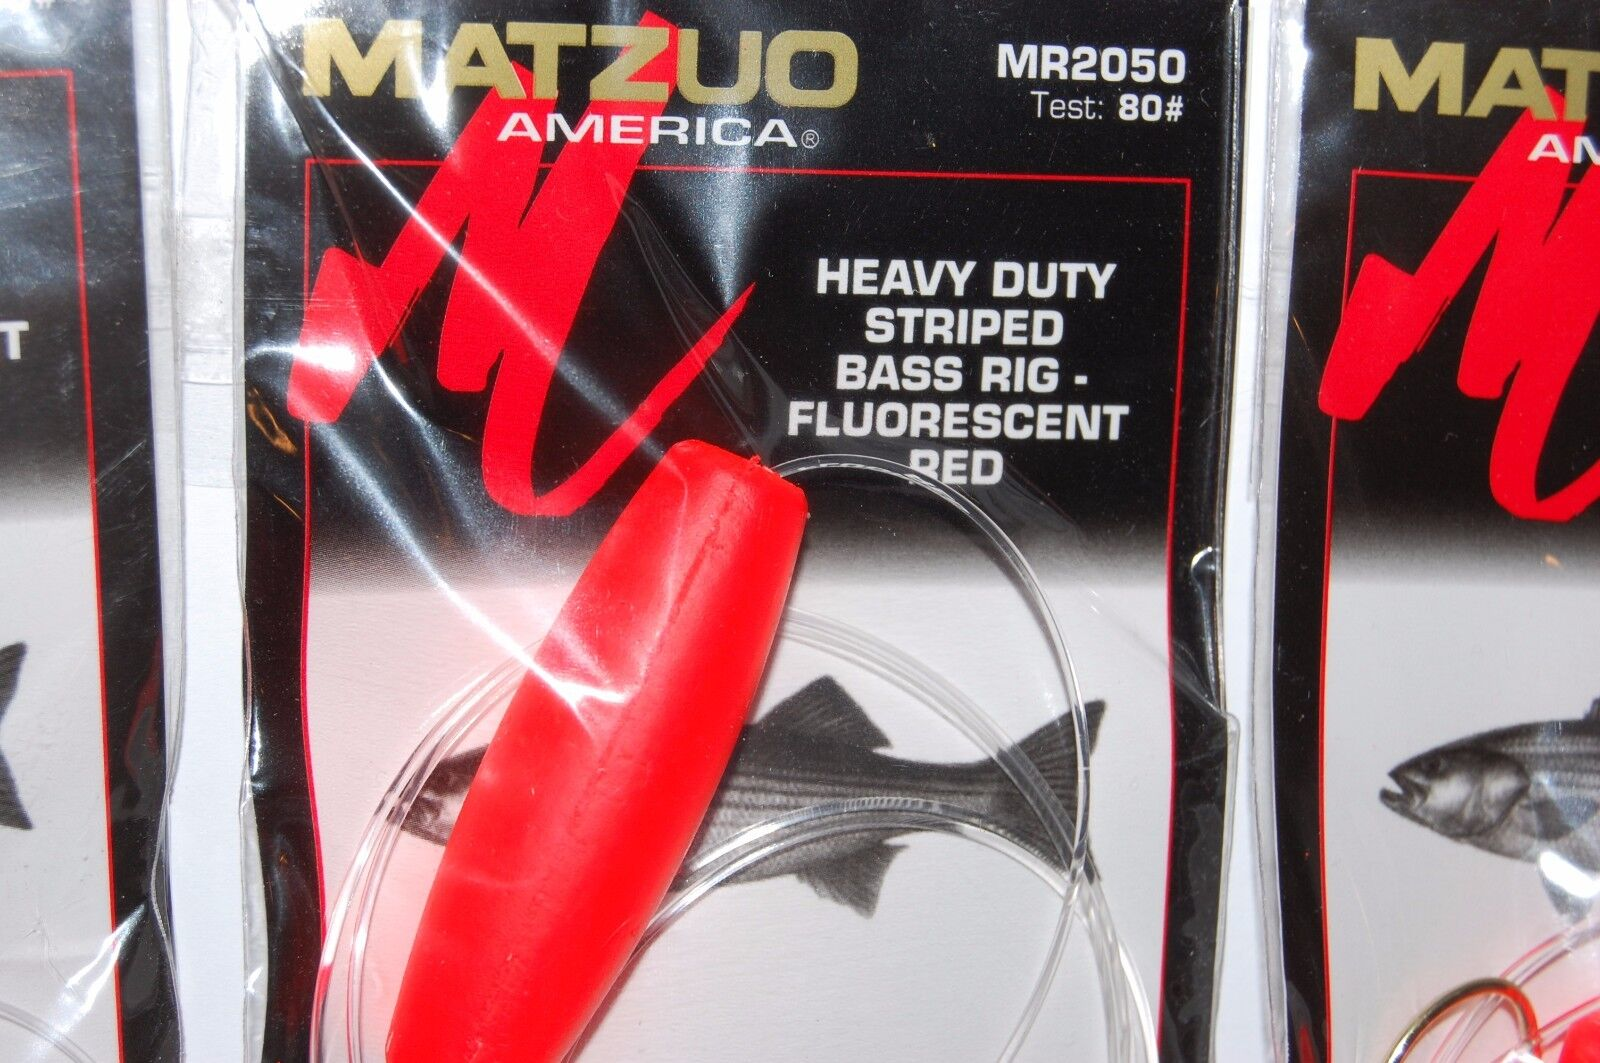 3 packs matzuo heavy duty striped bass rig stripers 80# mr2050 fluorescent red